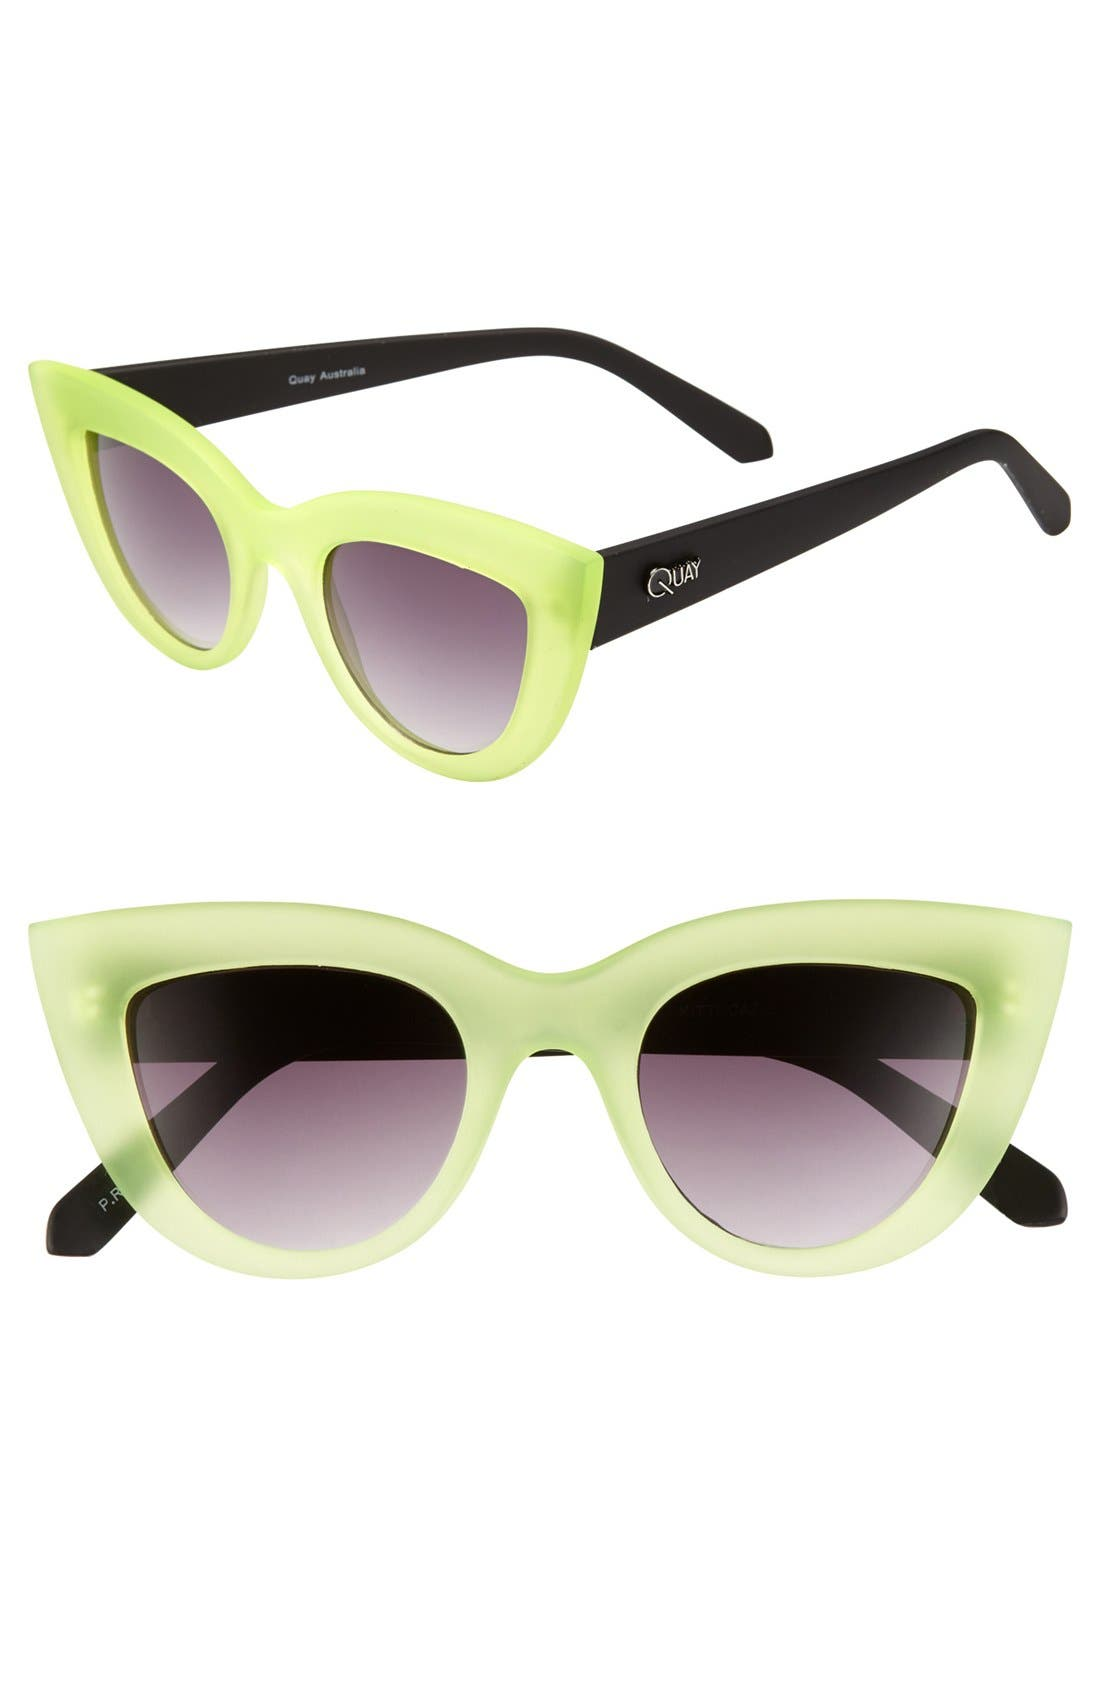 Main Image - Quay 'Kitti' Sunglasses